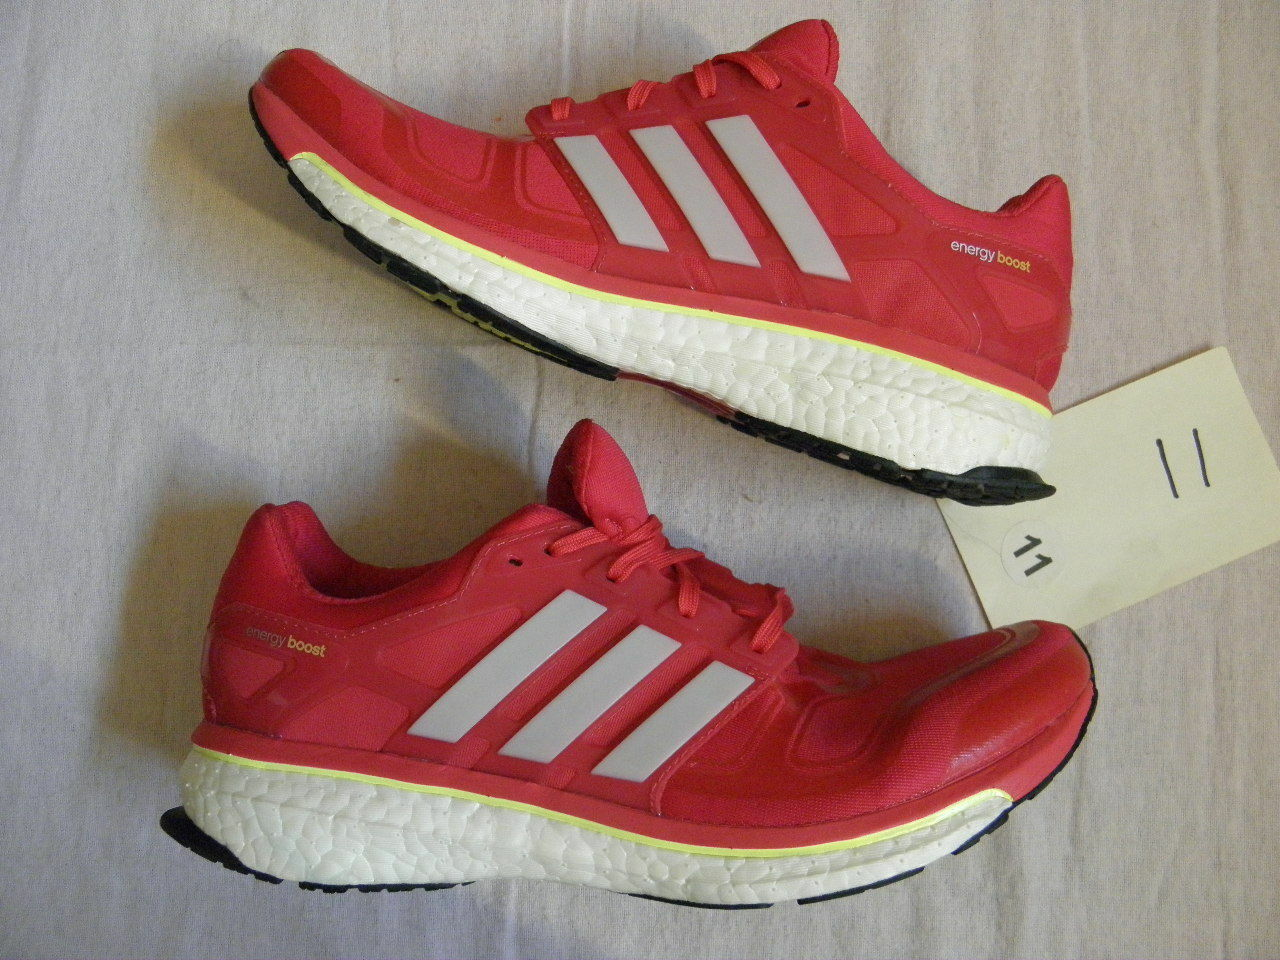 Adidas Energy Boost Ultraboost Yeezy size 11 womens or Price reduction Great discount